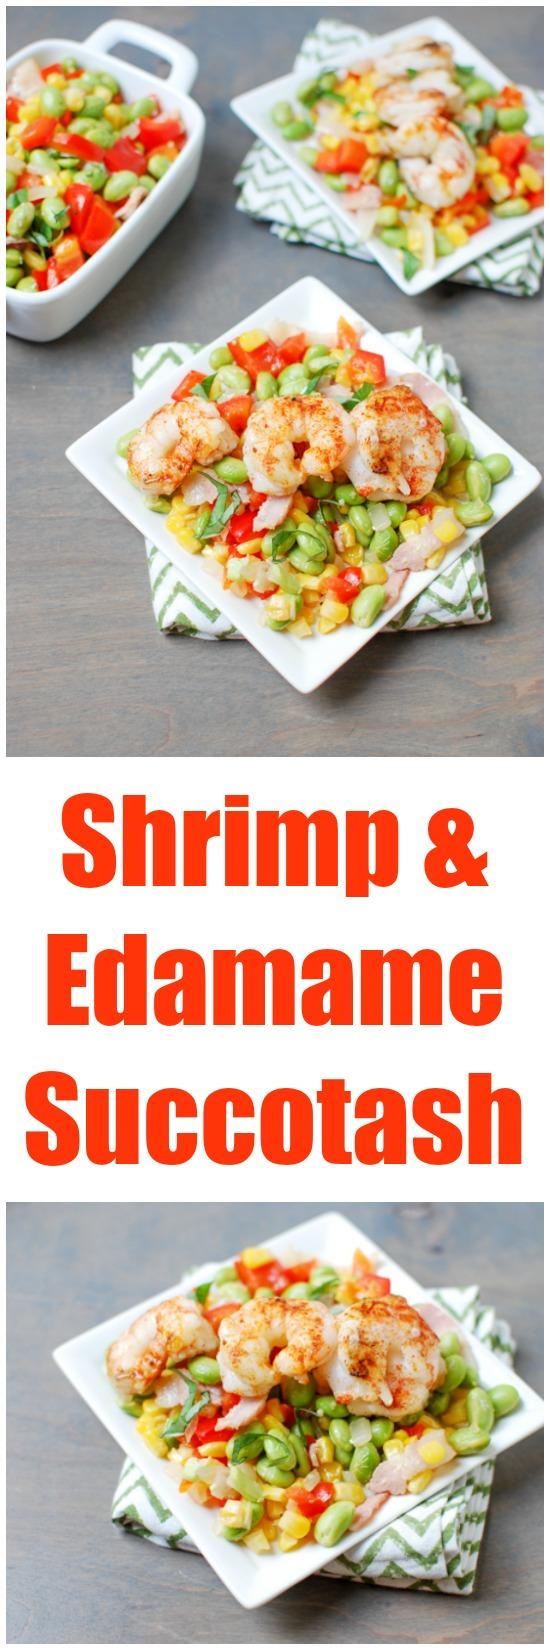 Bursting with summer flavors, this Shrimp and Edamame Succatash is a fun twist on the traditional and makes the perfect weeknight dinner.